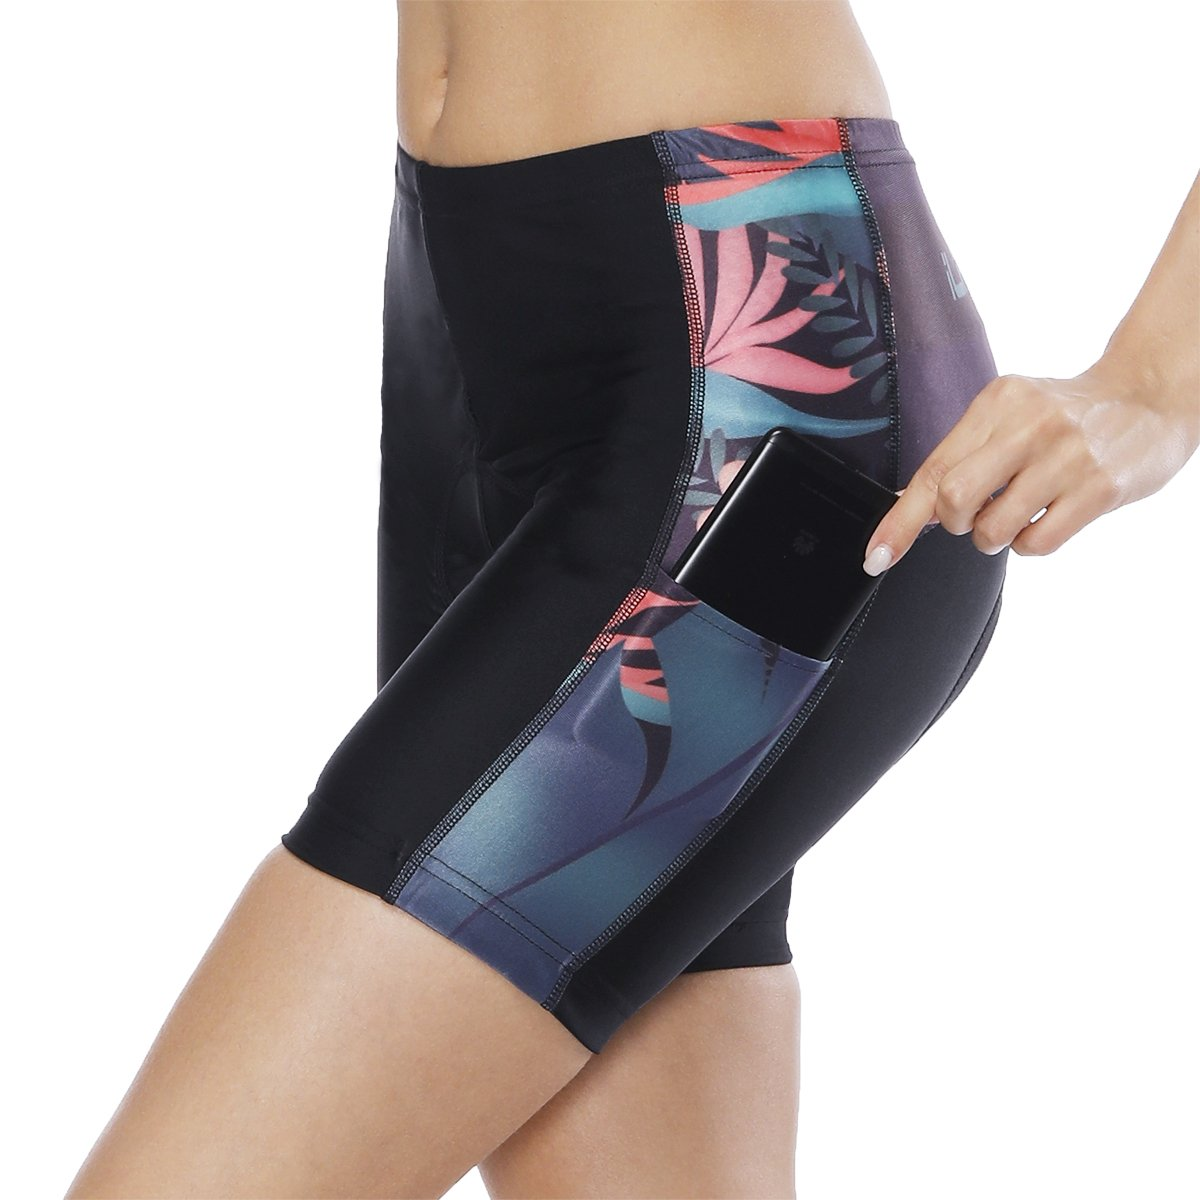 Womens Bike Shorts for Cycling with 3D Padded Pink Ride Women Cycling Shorts Black Flower S